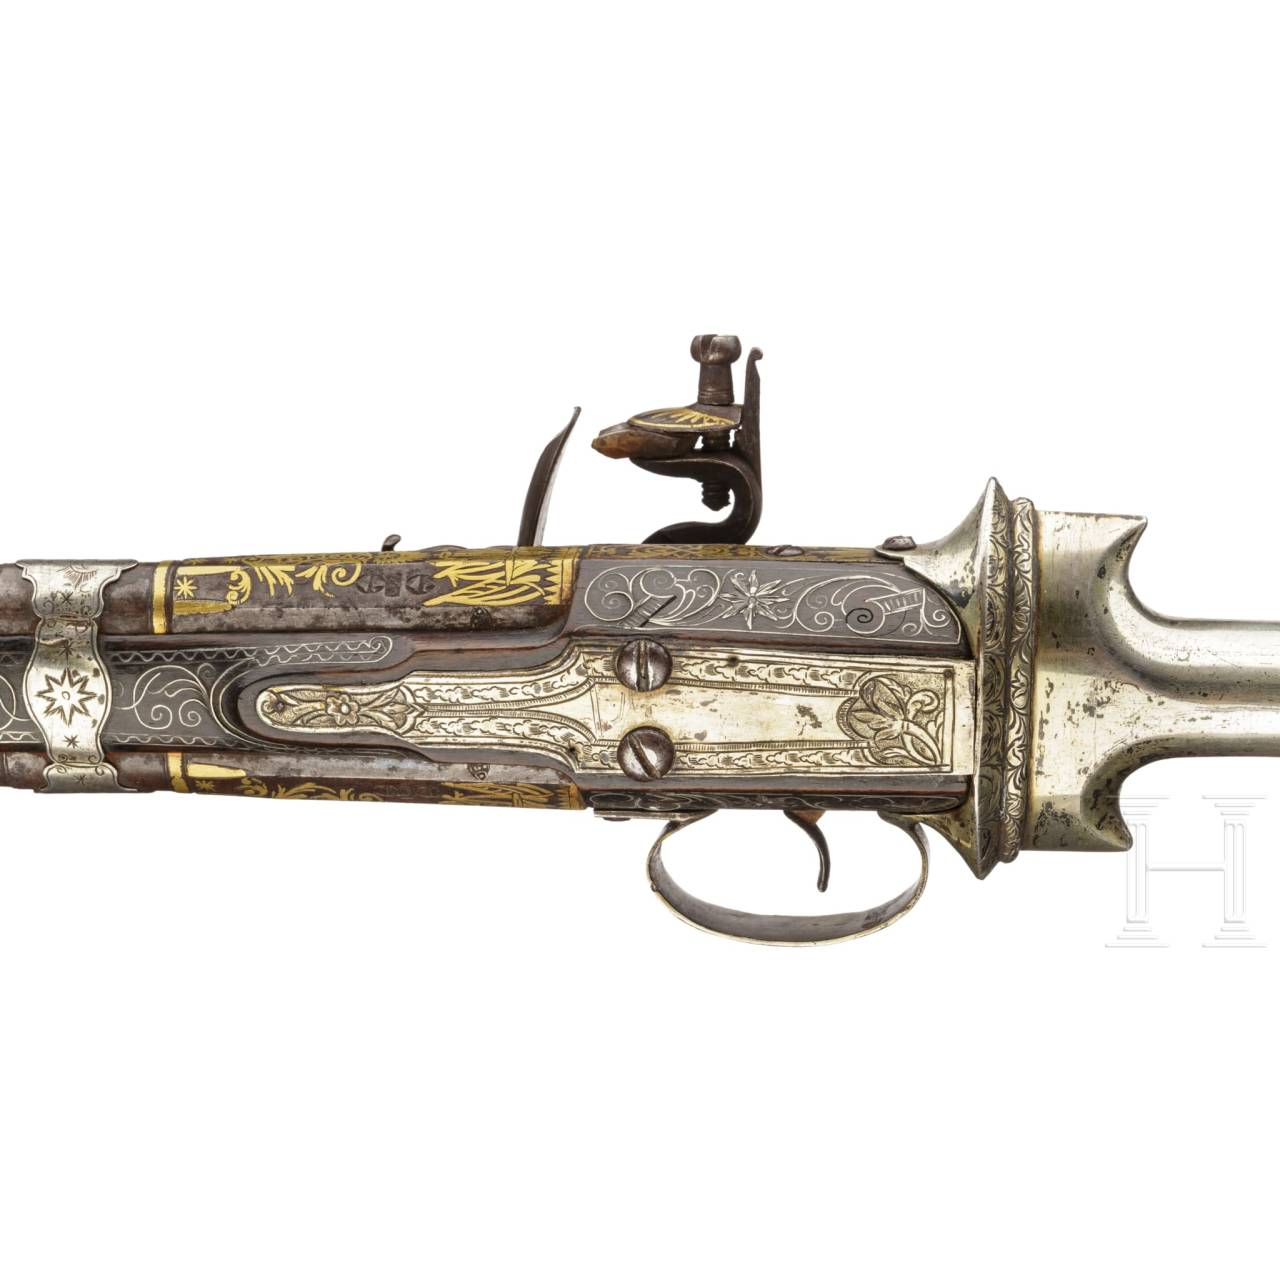 An Ottoman khanjar over-and-under flintlock pistol, 19th century